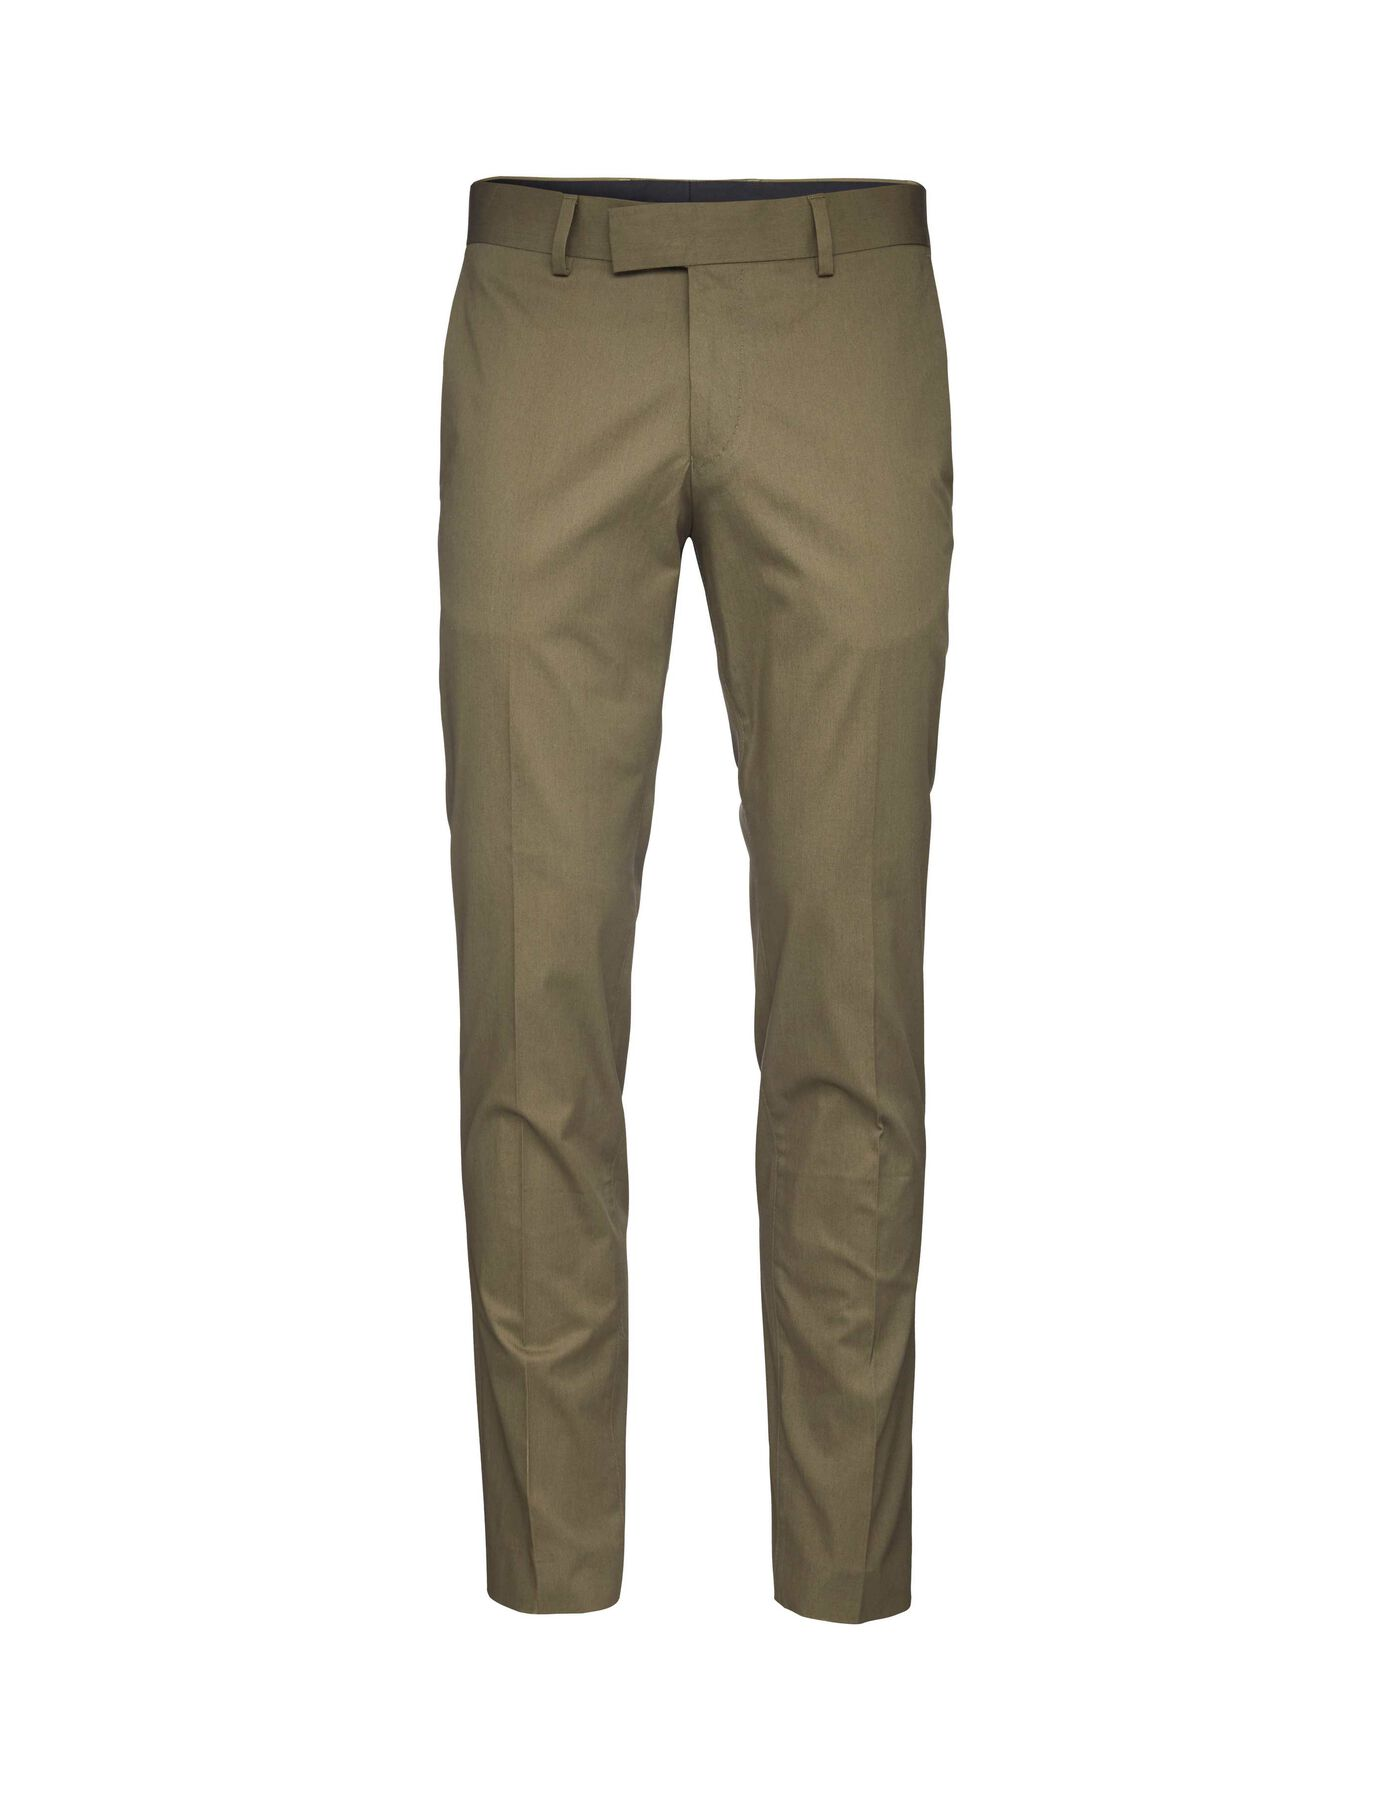 Gordon trousers in Military Green from Tiger of Sweden